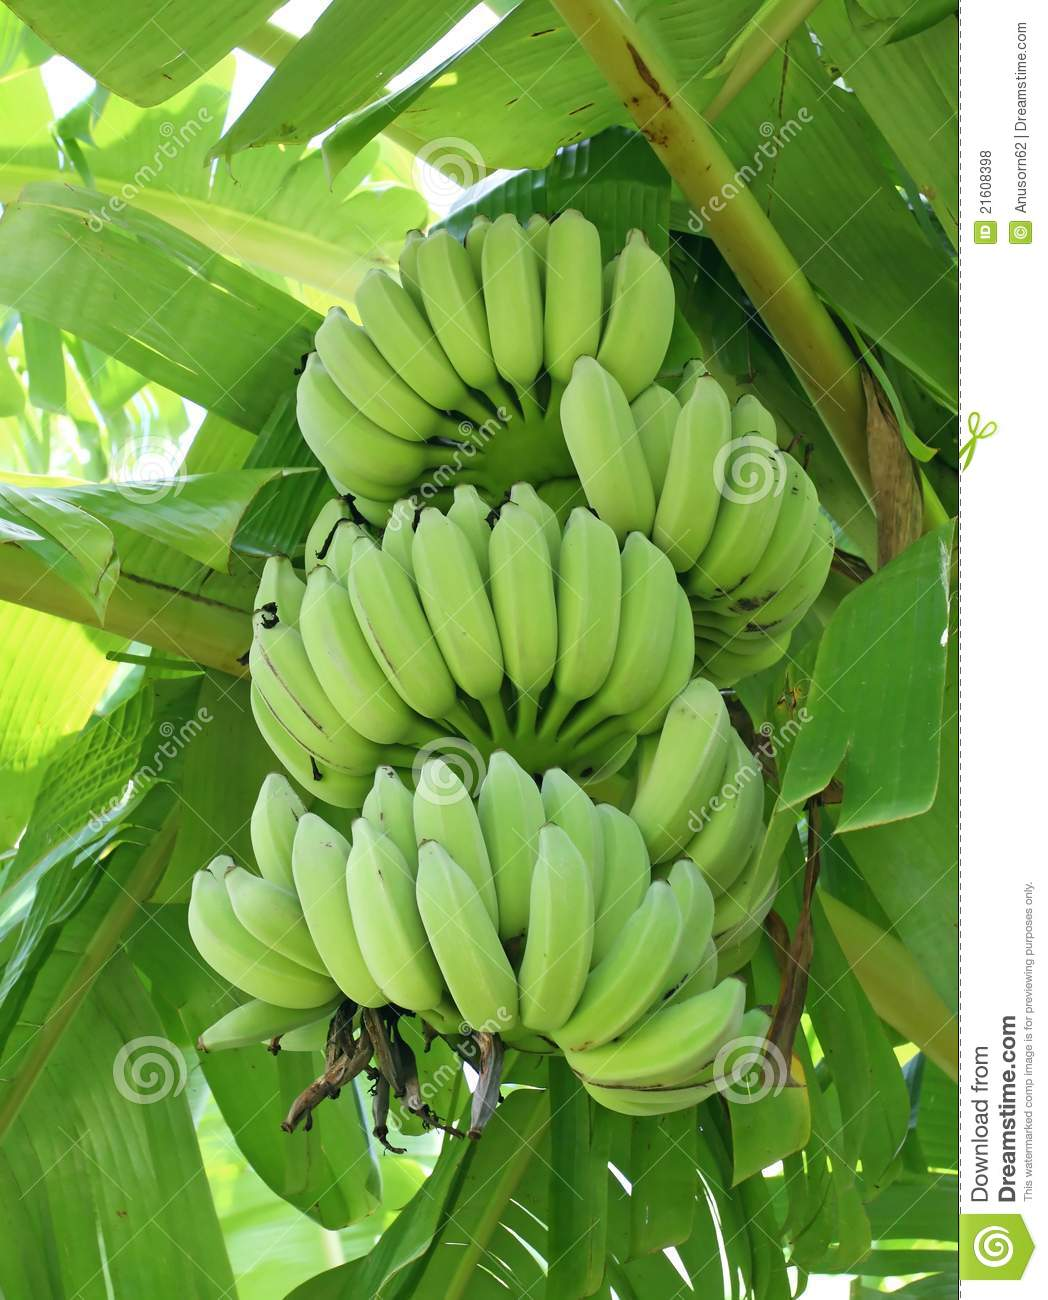 Green Bananas A Tree Royalty Free Stock s Image